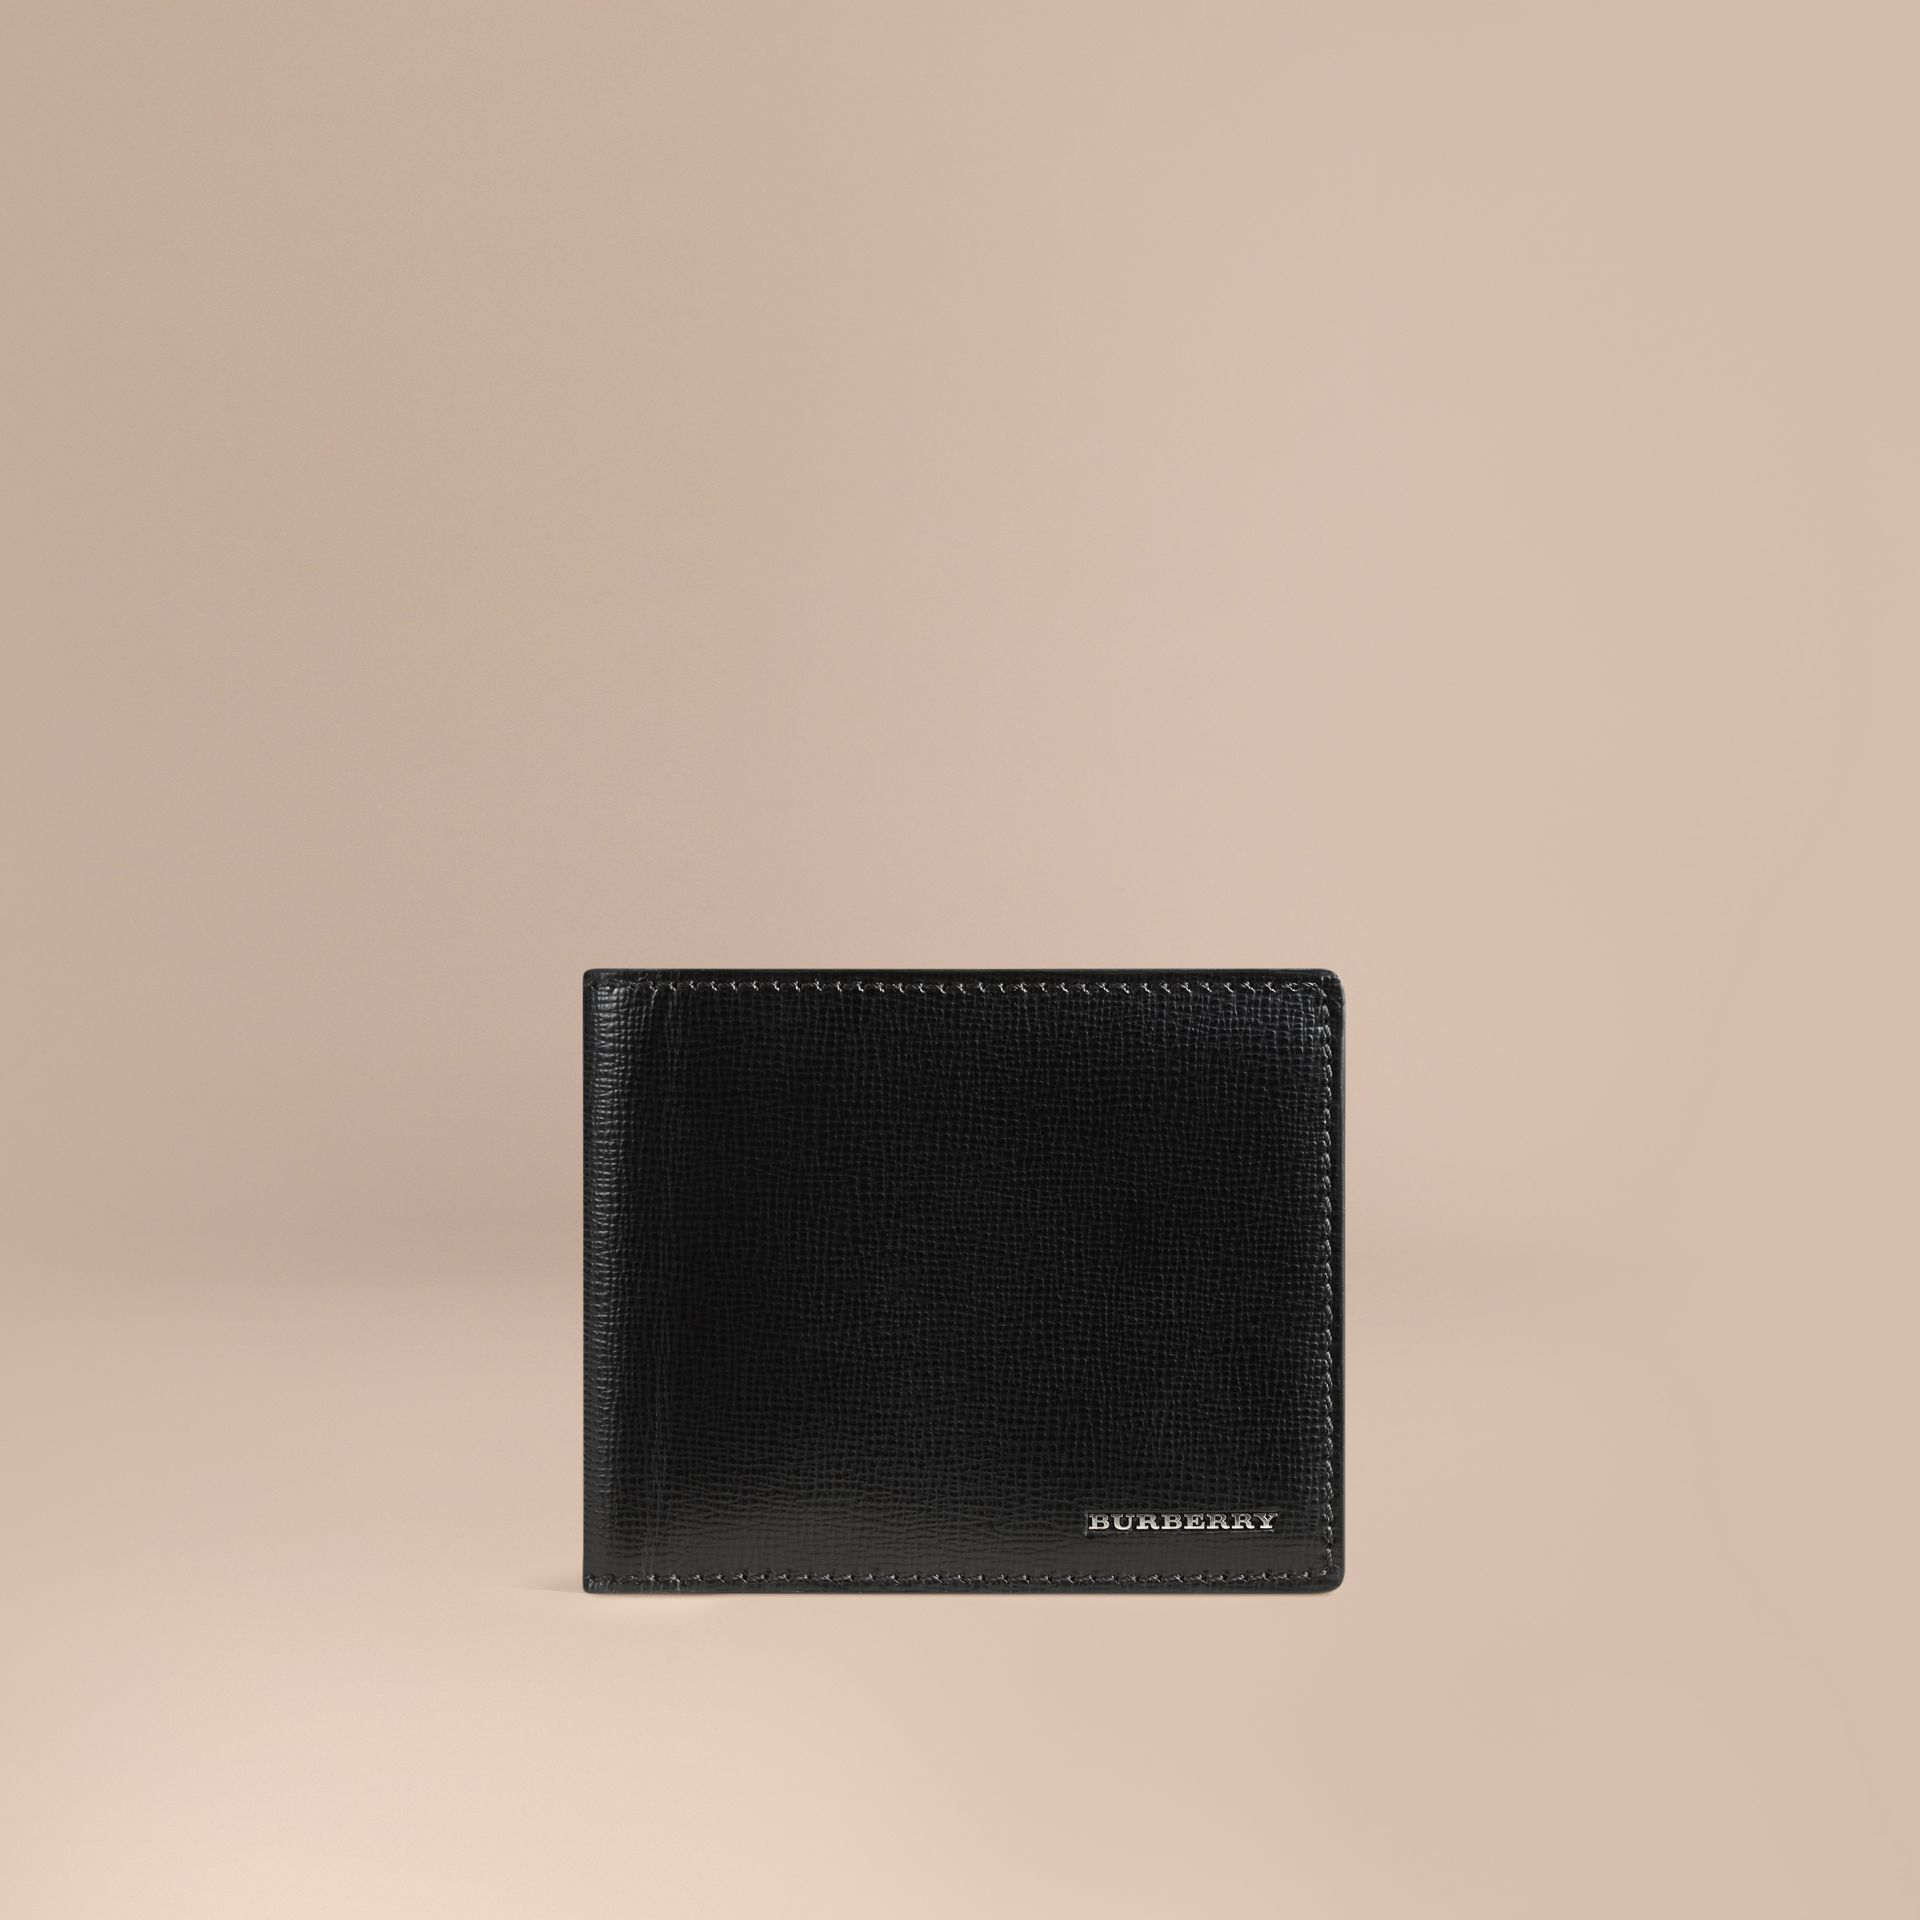 London Leather ID Wallet in Black - gallery image 1